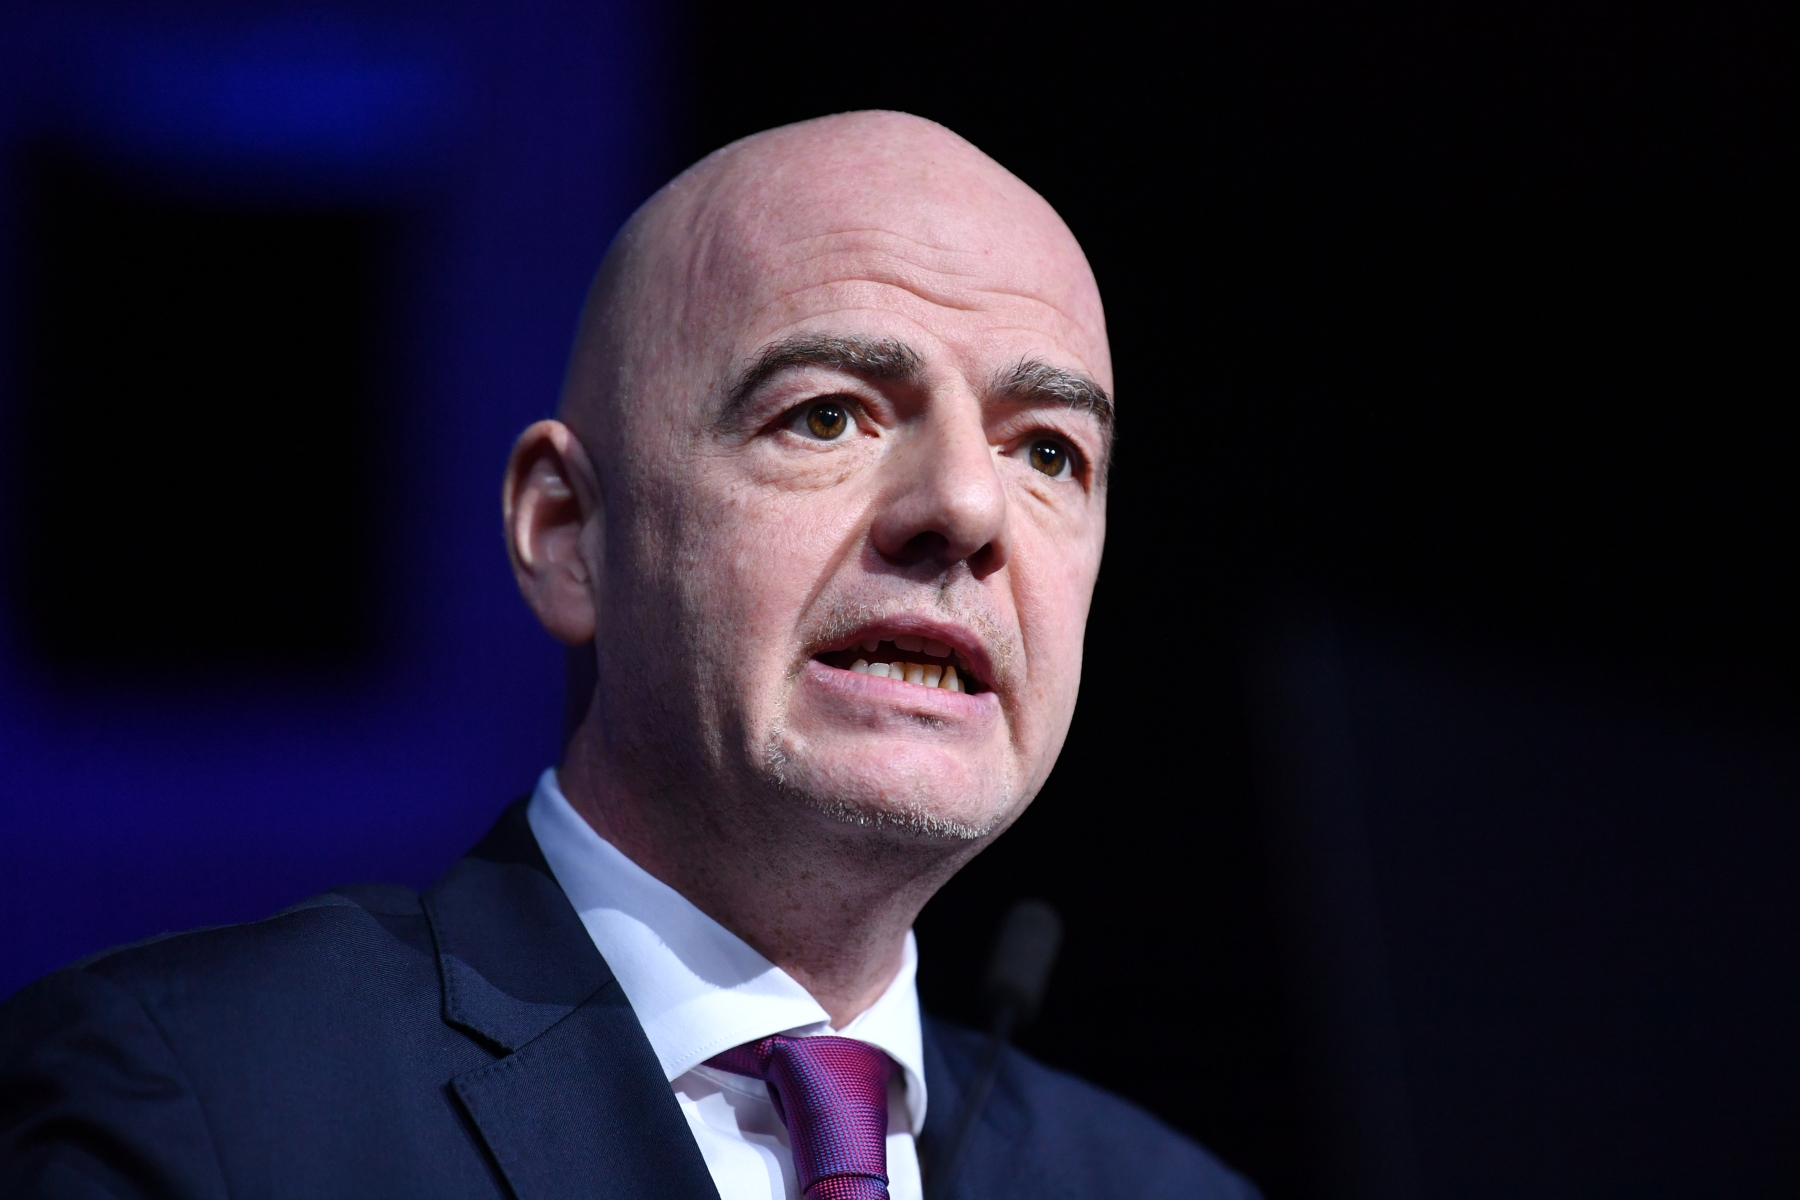 FIFA President Gianni Infantino Is Subject of Criminal Investigation